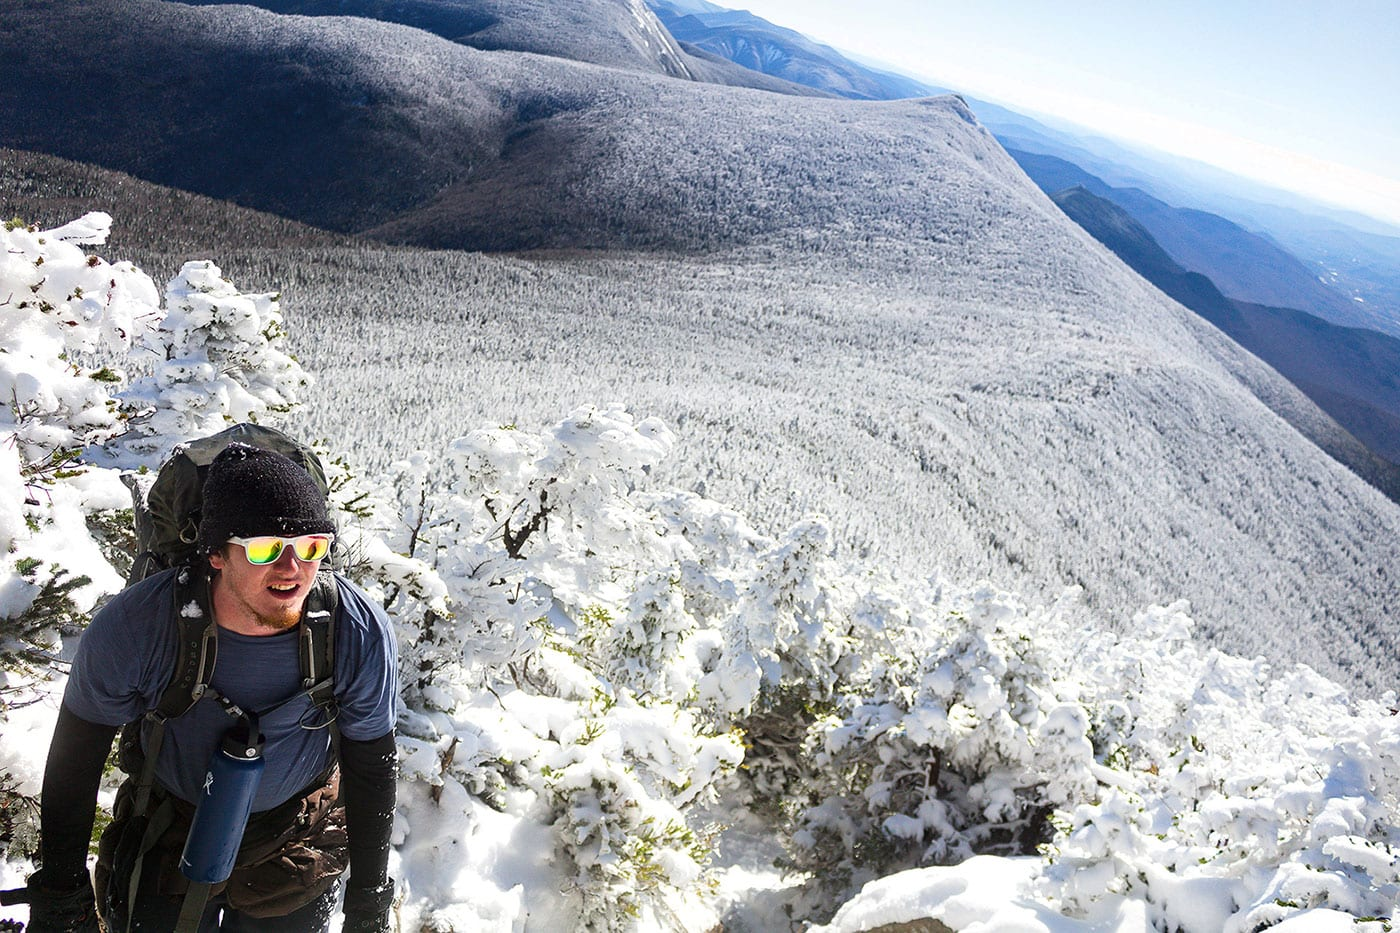 A photo of a man hiking snowy Franconia Notch as he recovers from addiction with help from Foxhole Immersion.